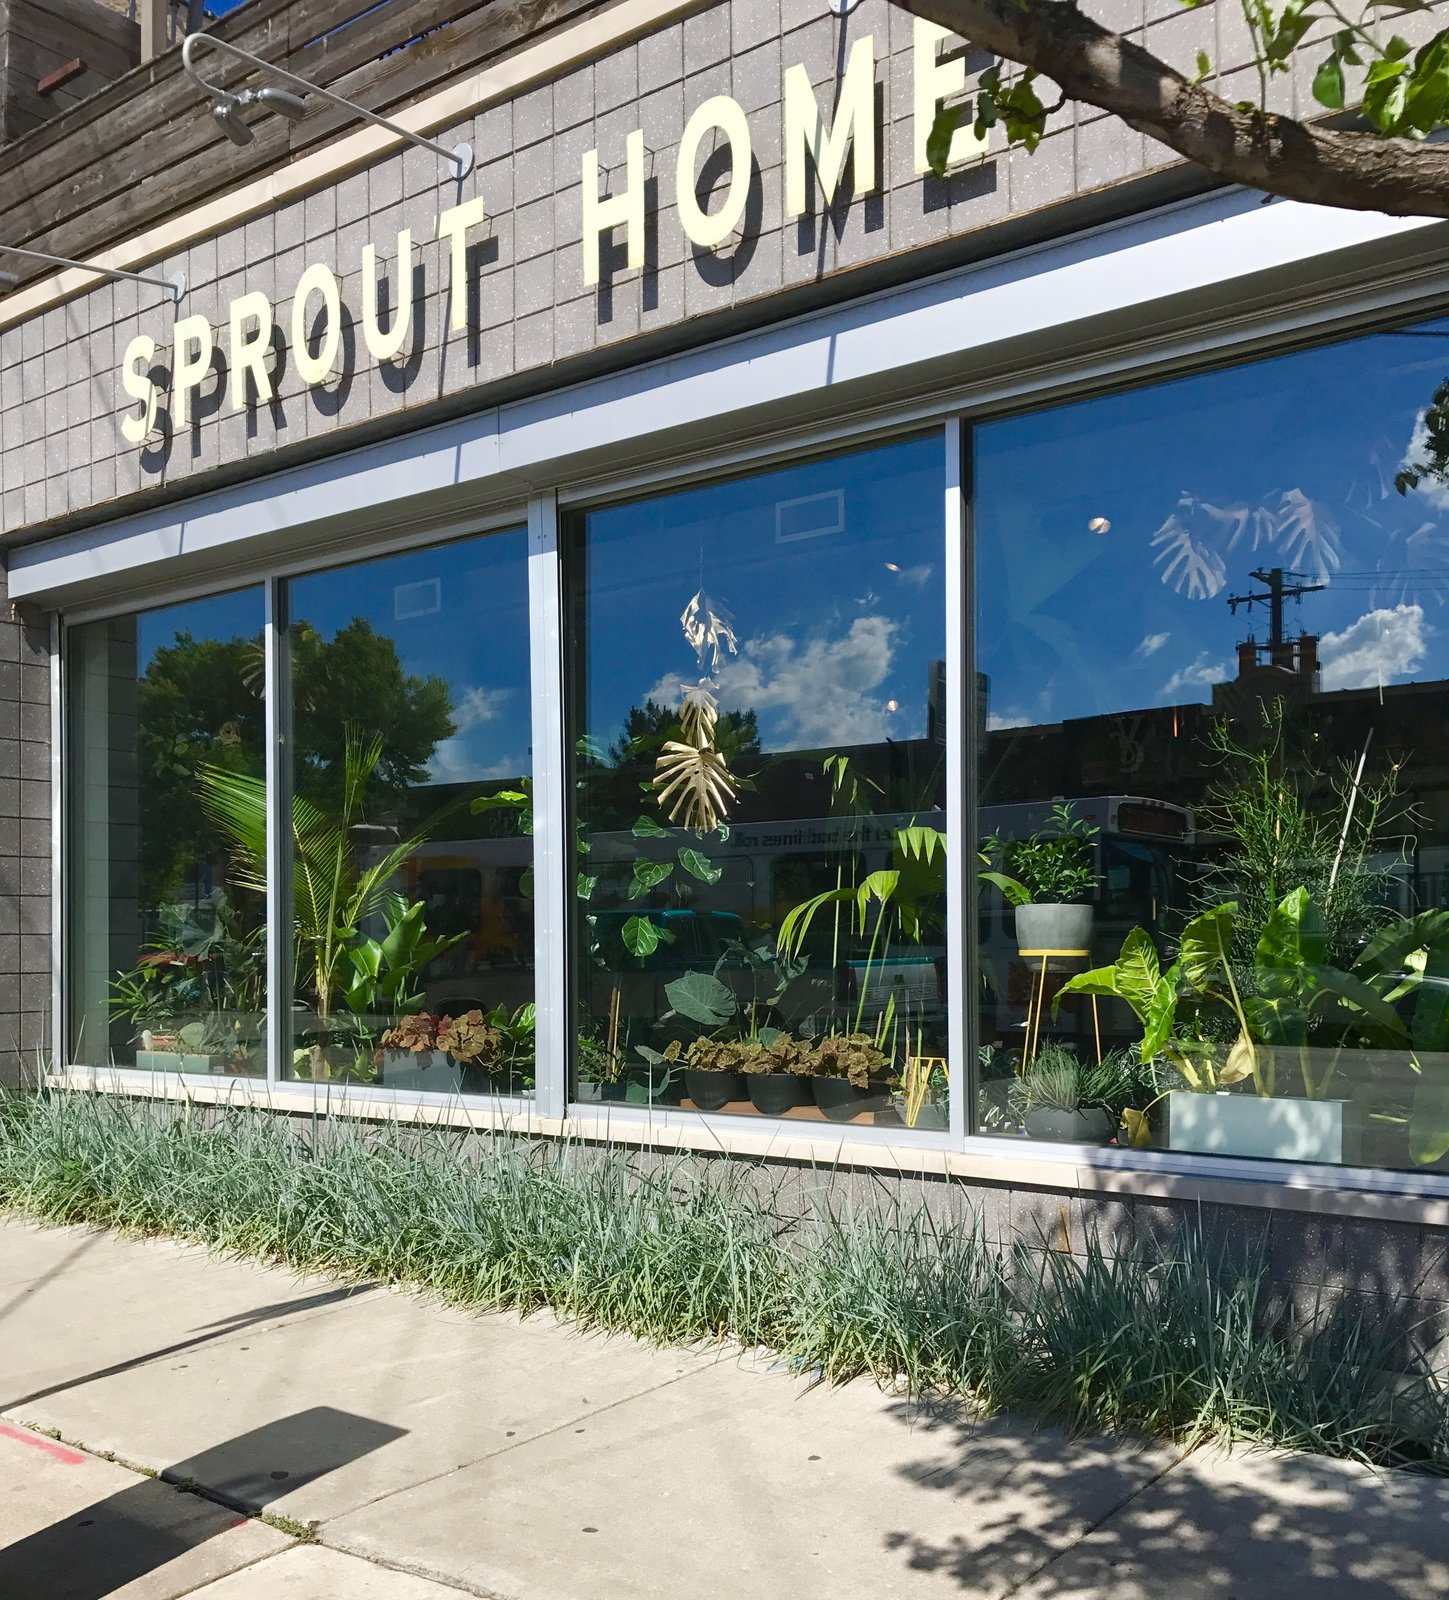 Sprout Home Kitchen and Table  Photo 5 of 7 in Top Design Cities 2019: Chicago